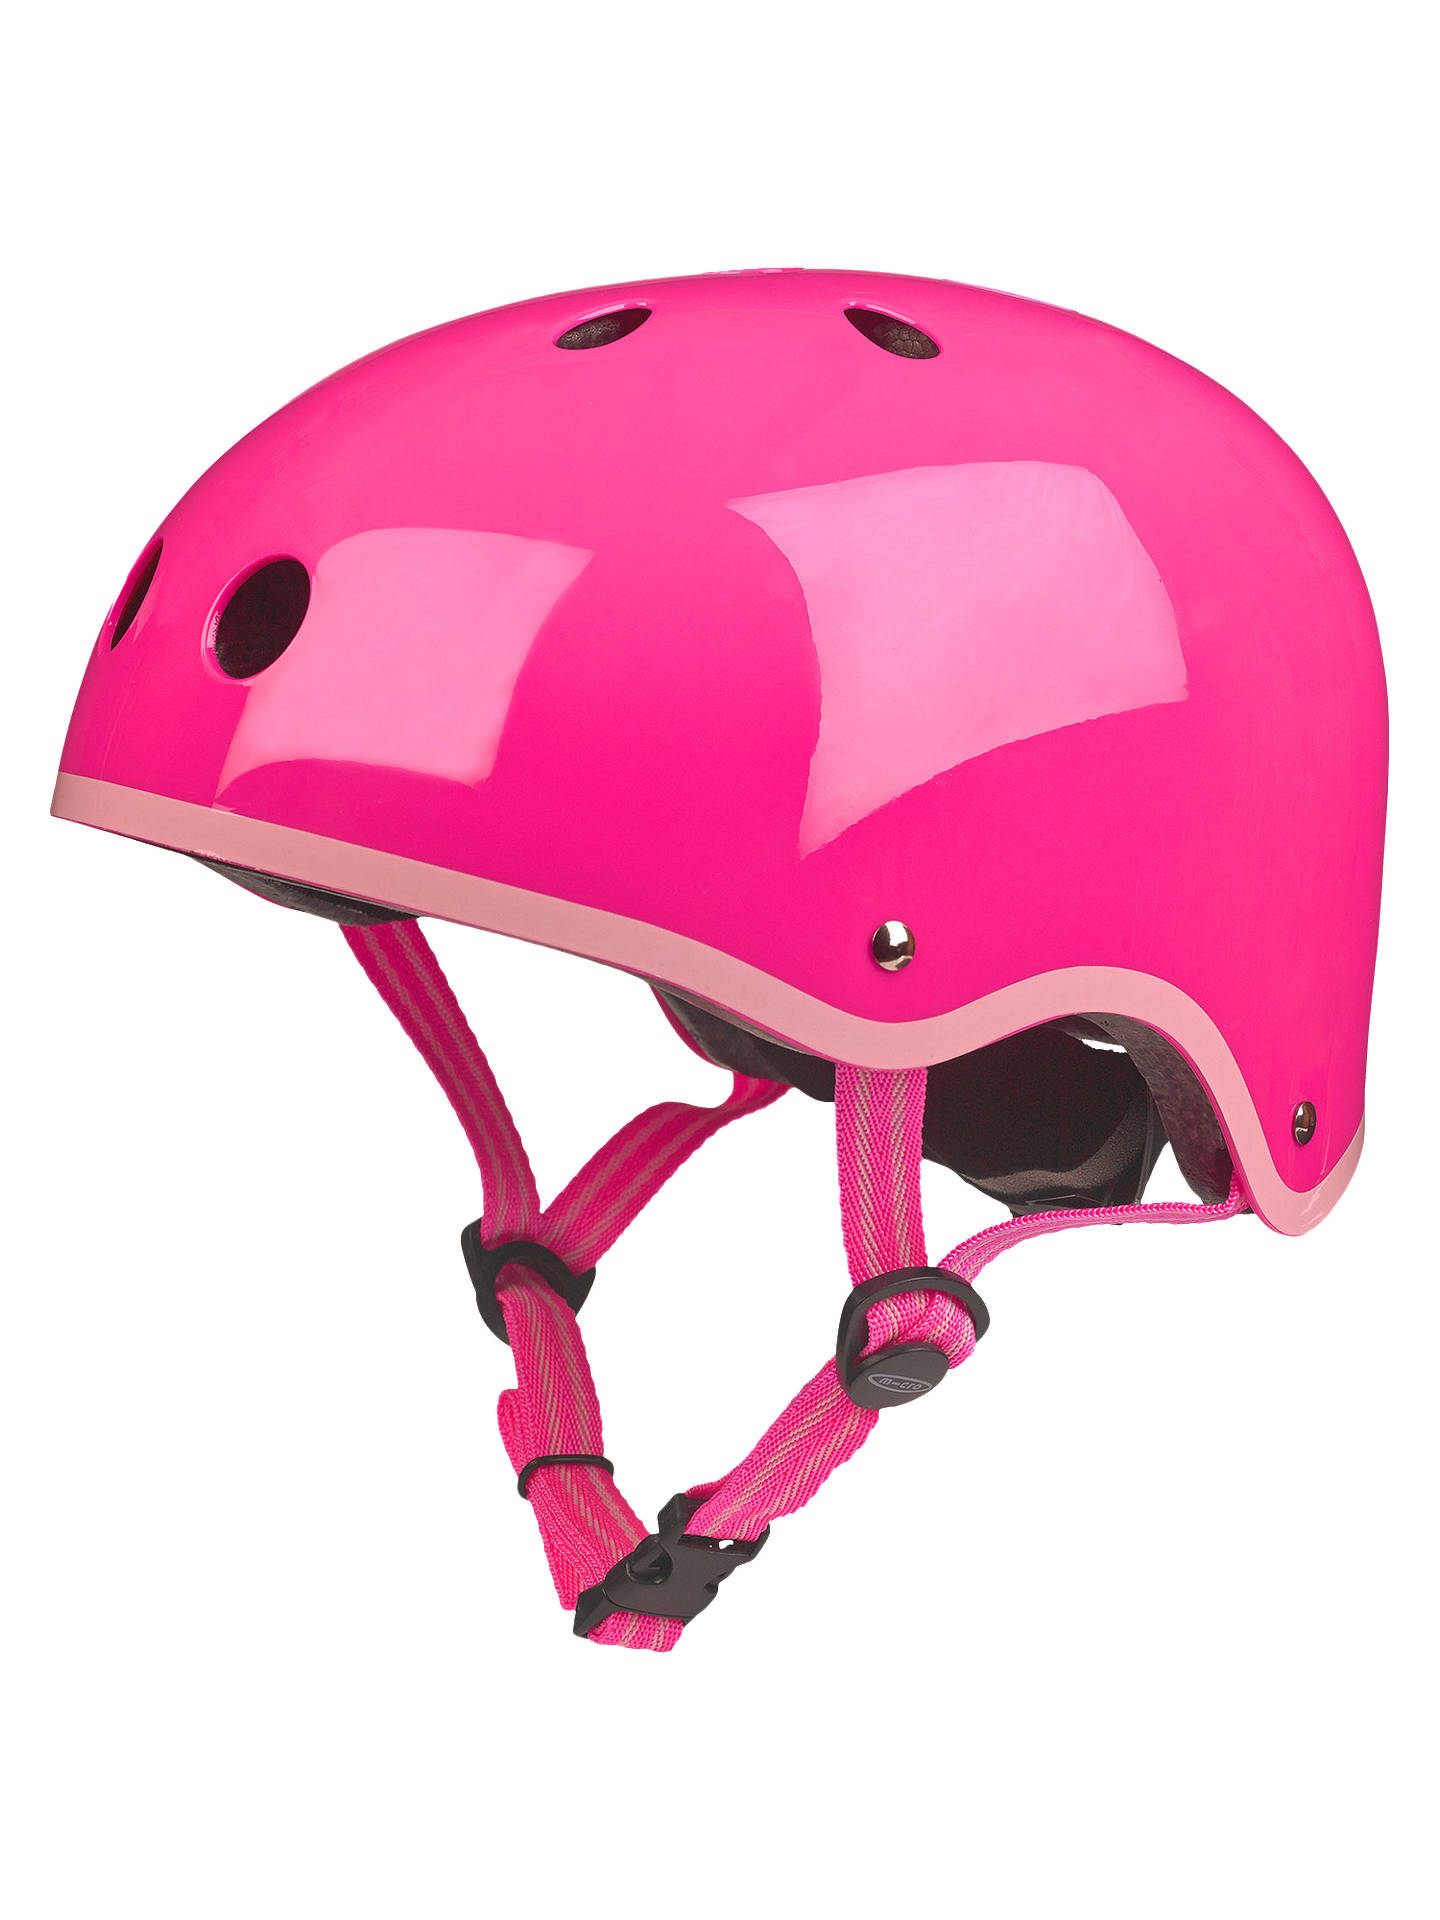 BuyMicro Scooter Helmet, Small, Neon Pink Online at johnlewis.com